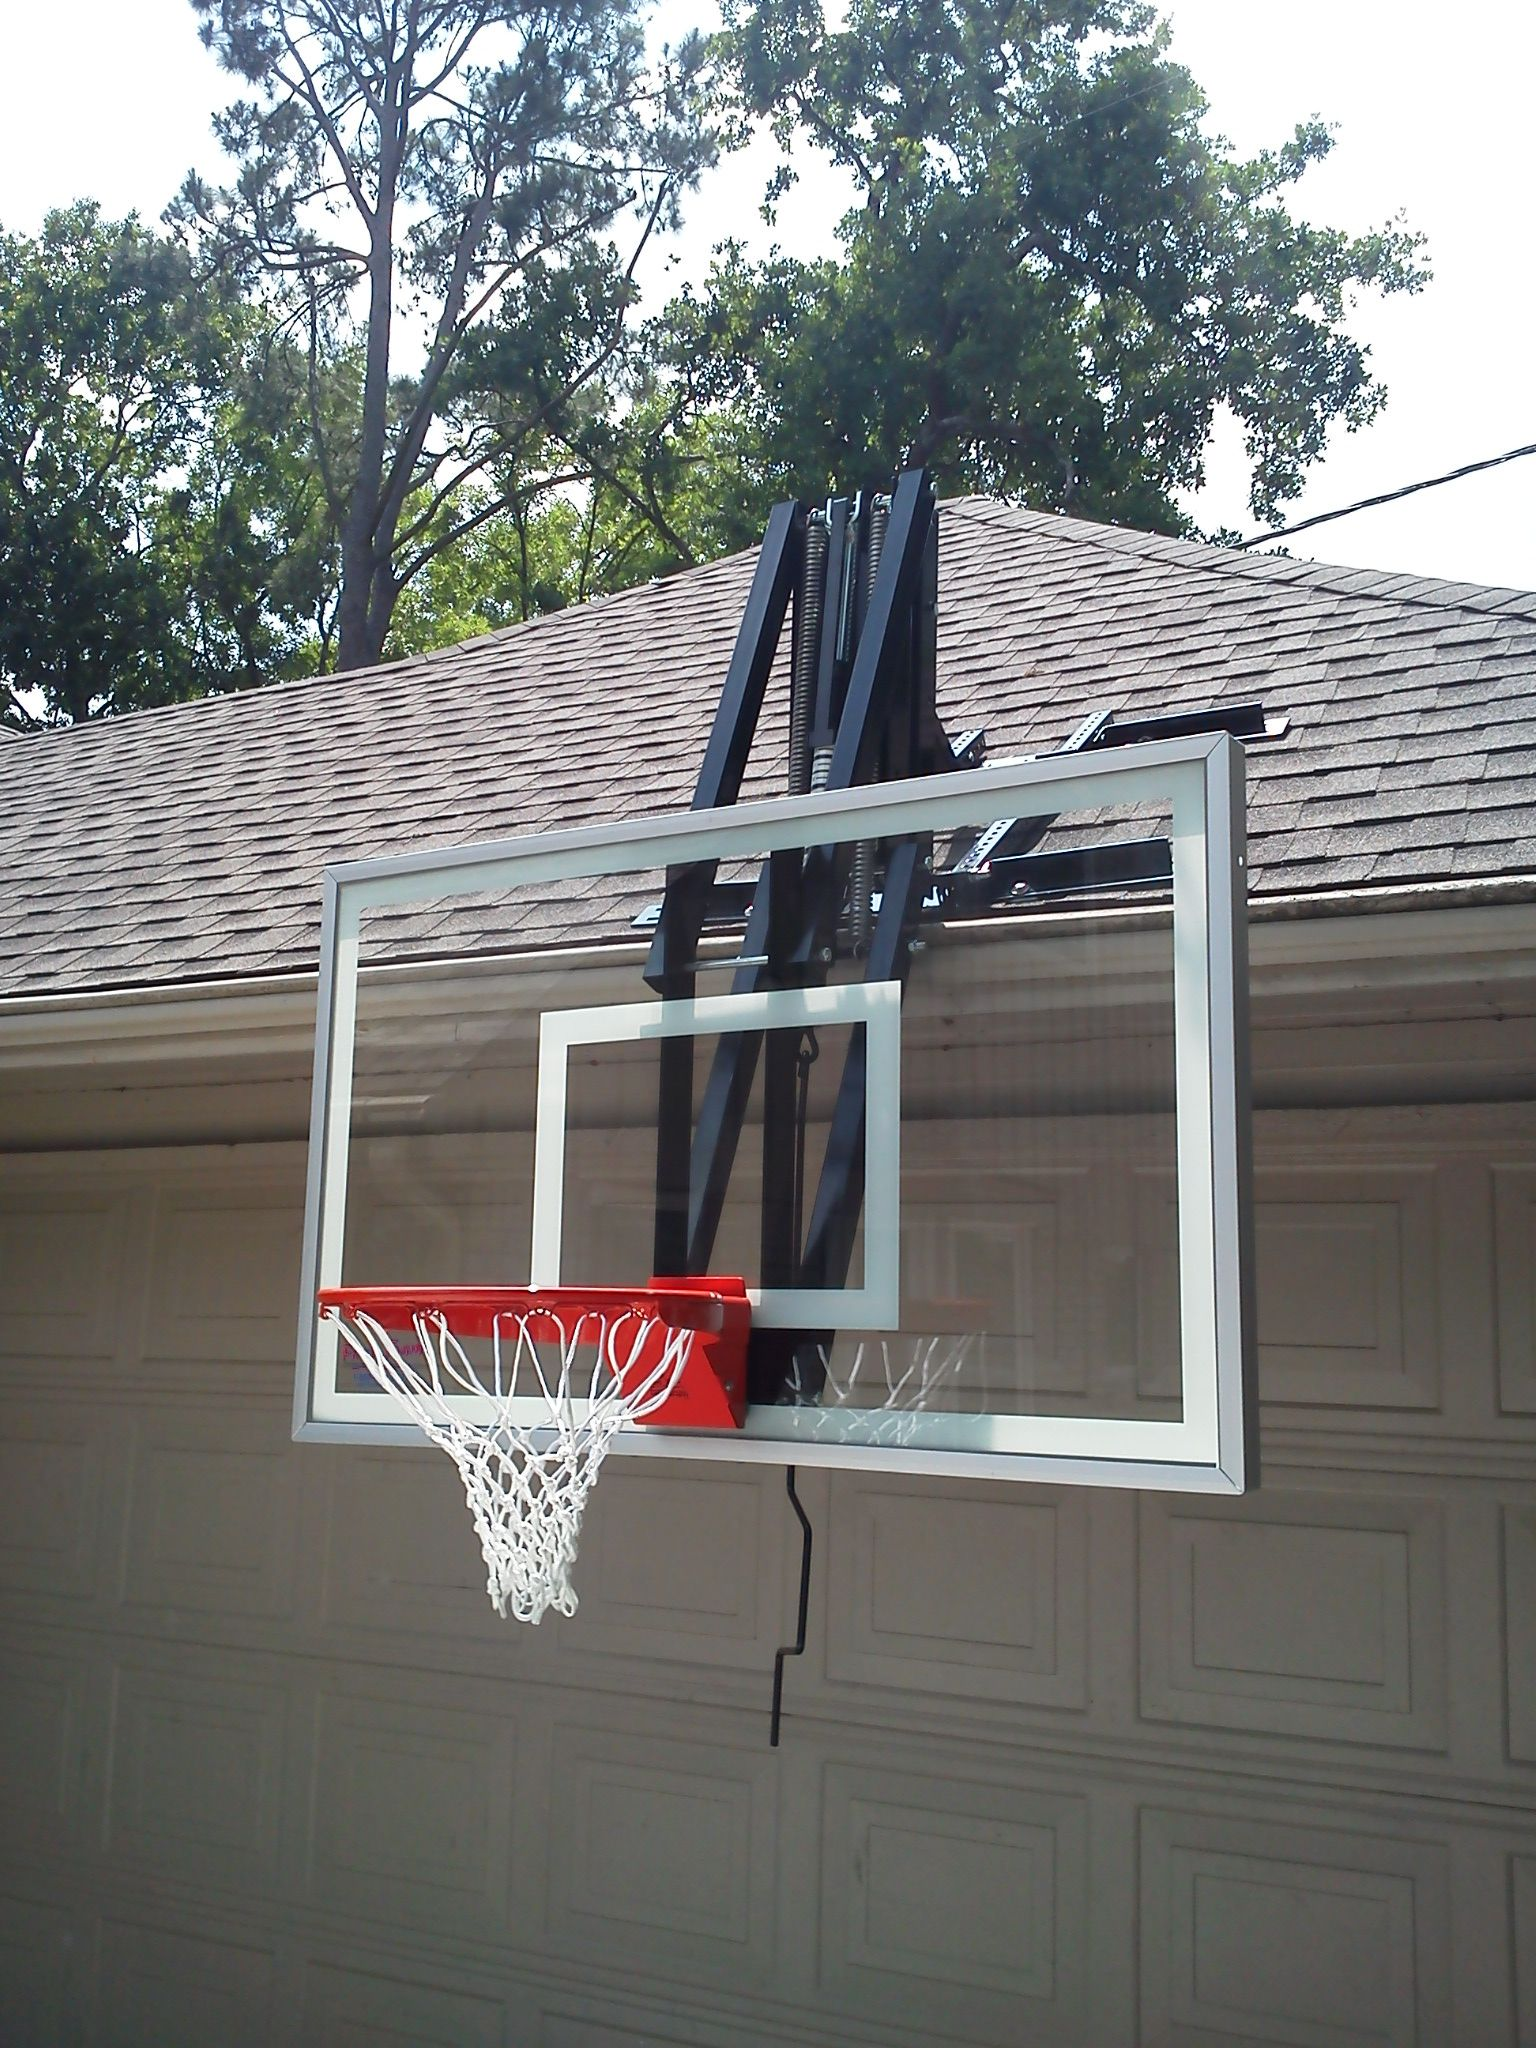 Lovely Roof Master Roof Mount Basketball System From DunRite Playgrounds  Http://www.dunriteplaygrounds